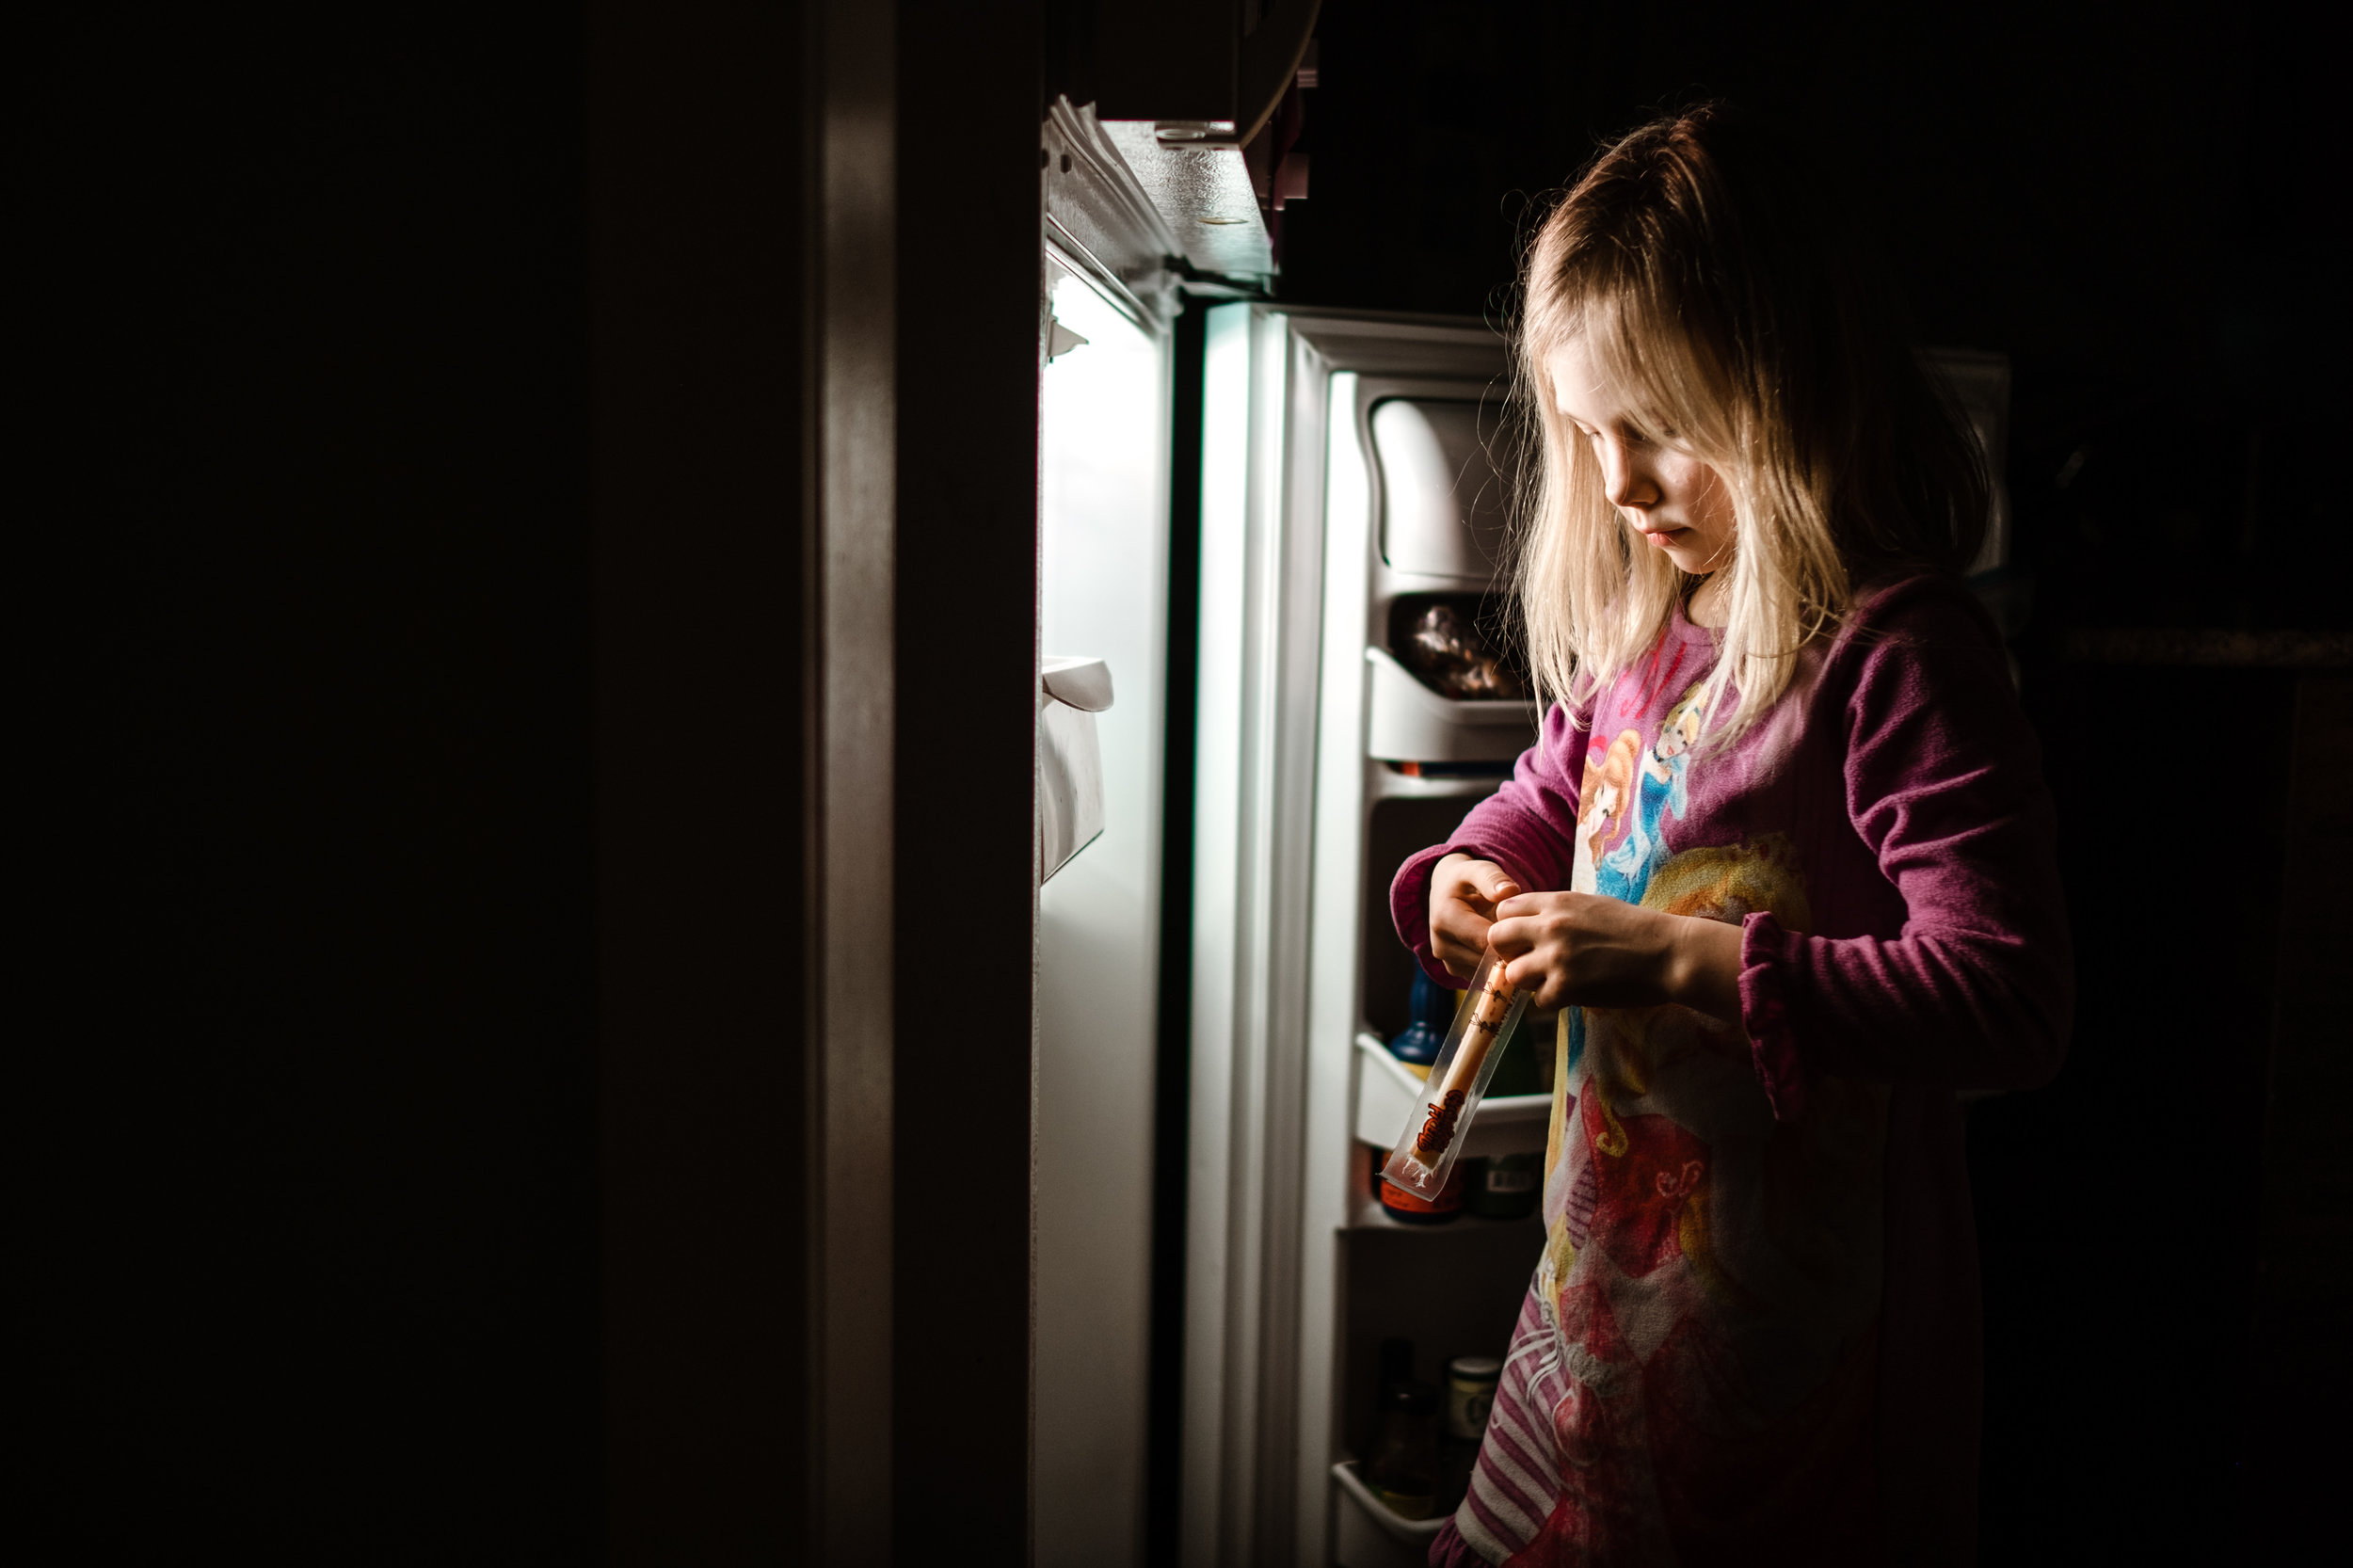 fridge-cheese-string-child-photography-fraser-valley